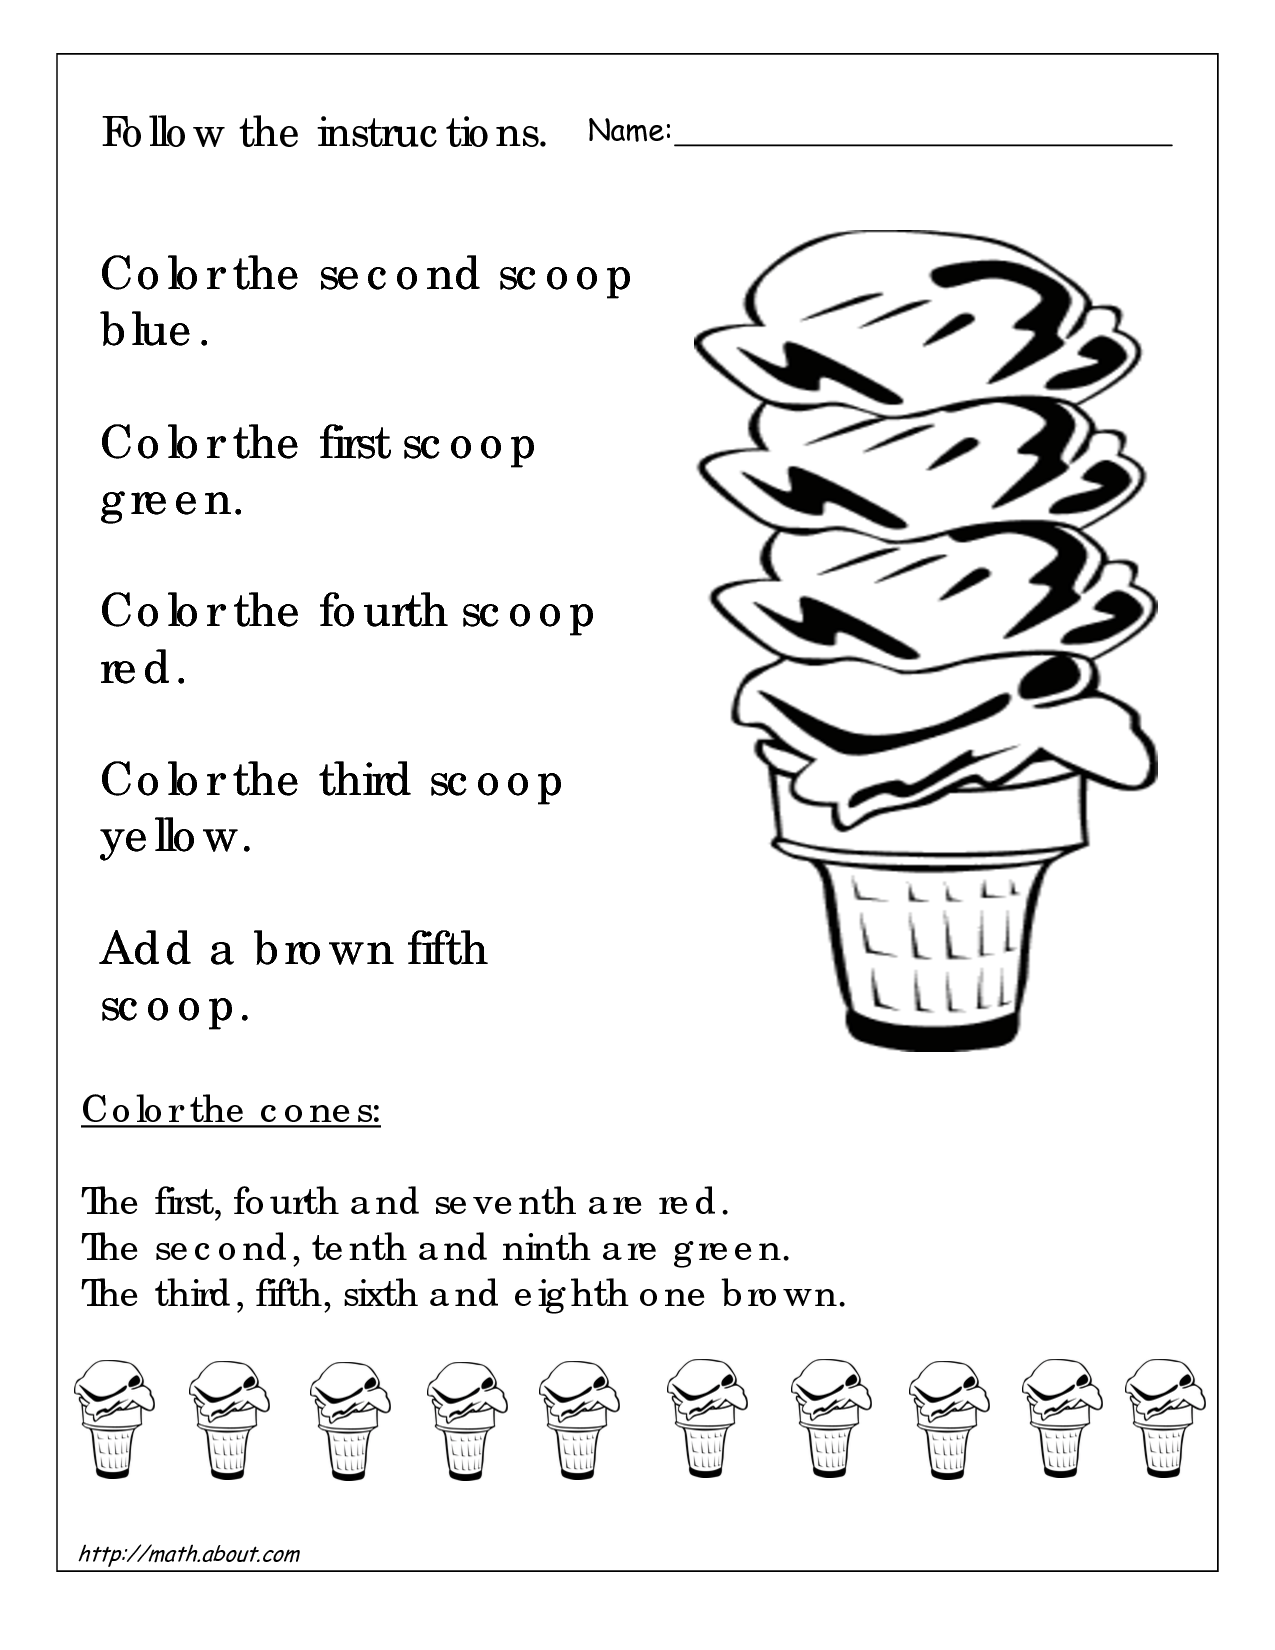 Free science worksheets for 3rd grade